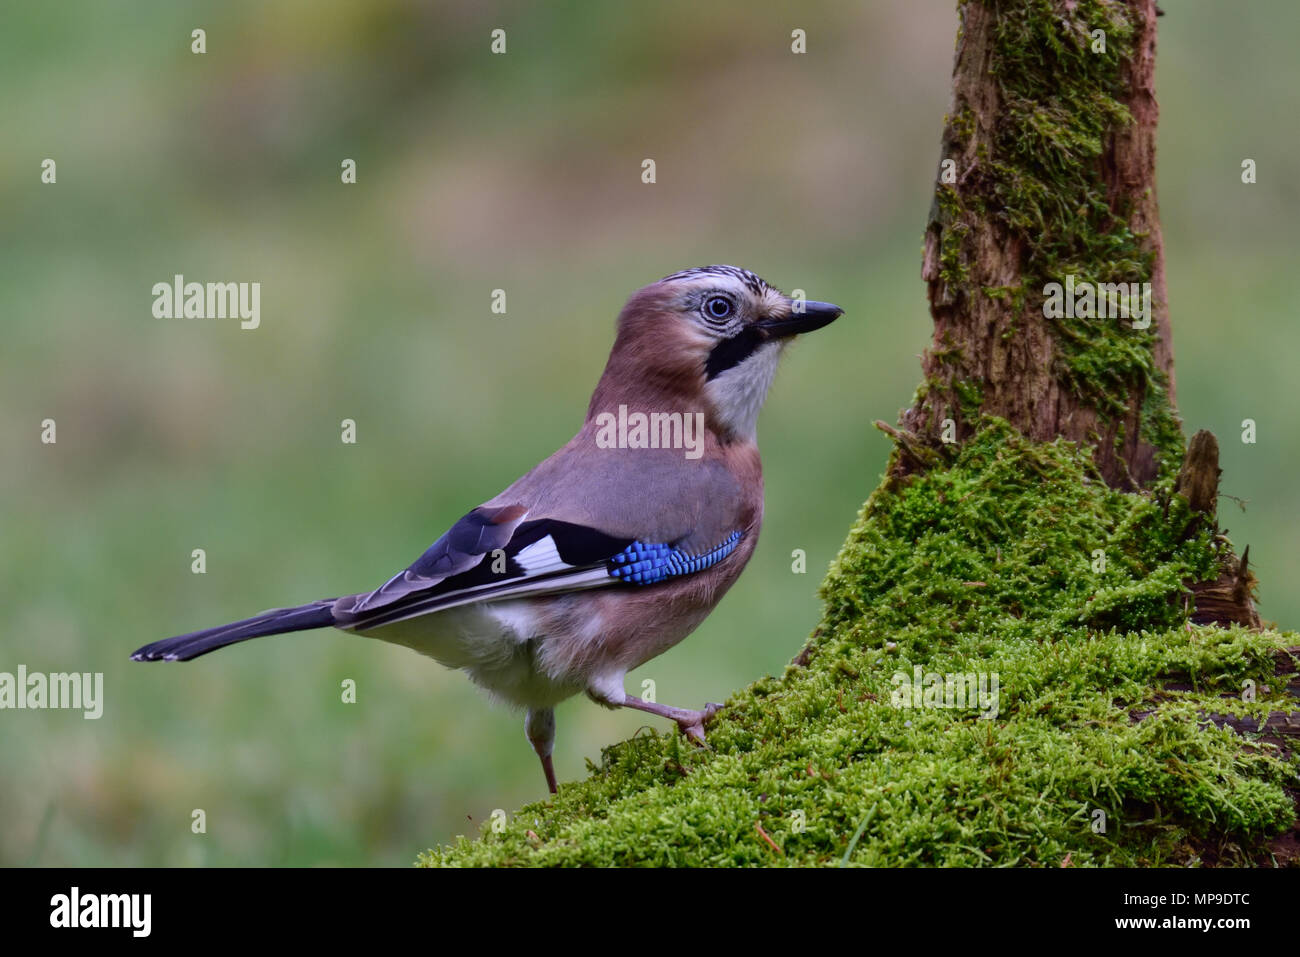 jay on the wood - Stock Image